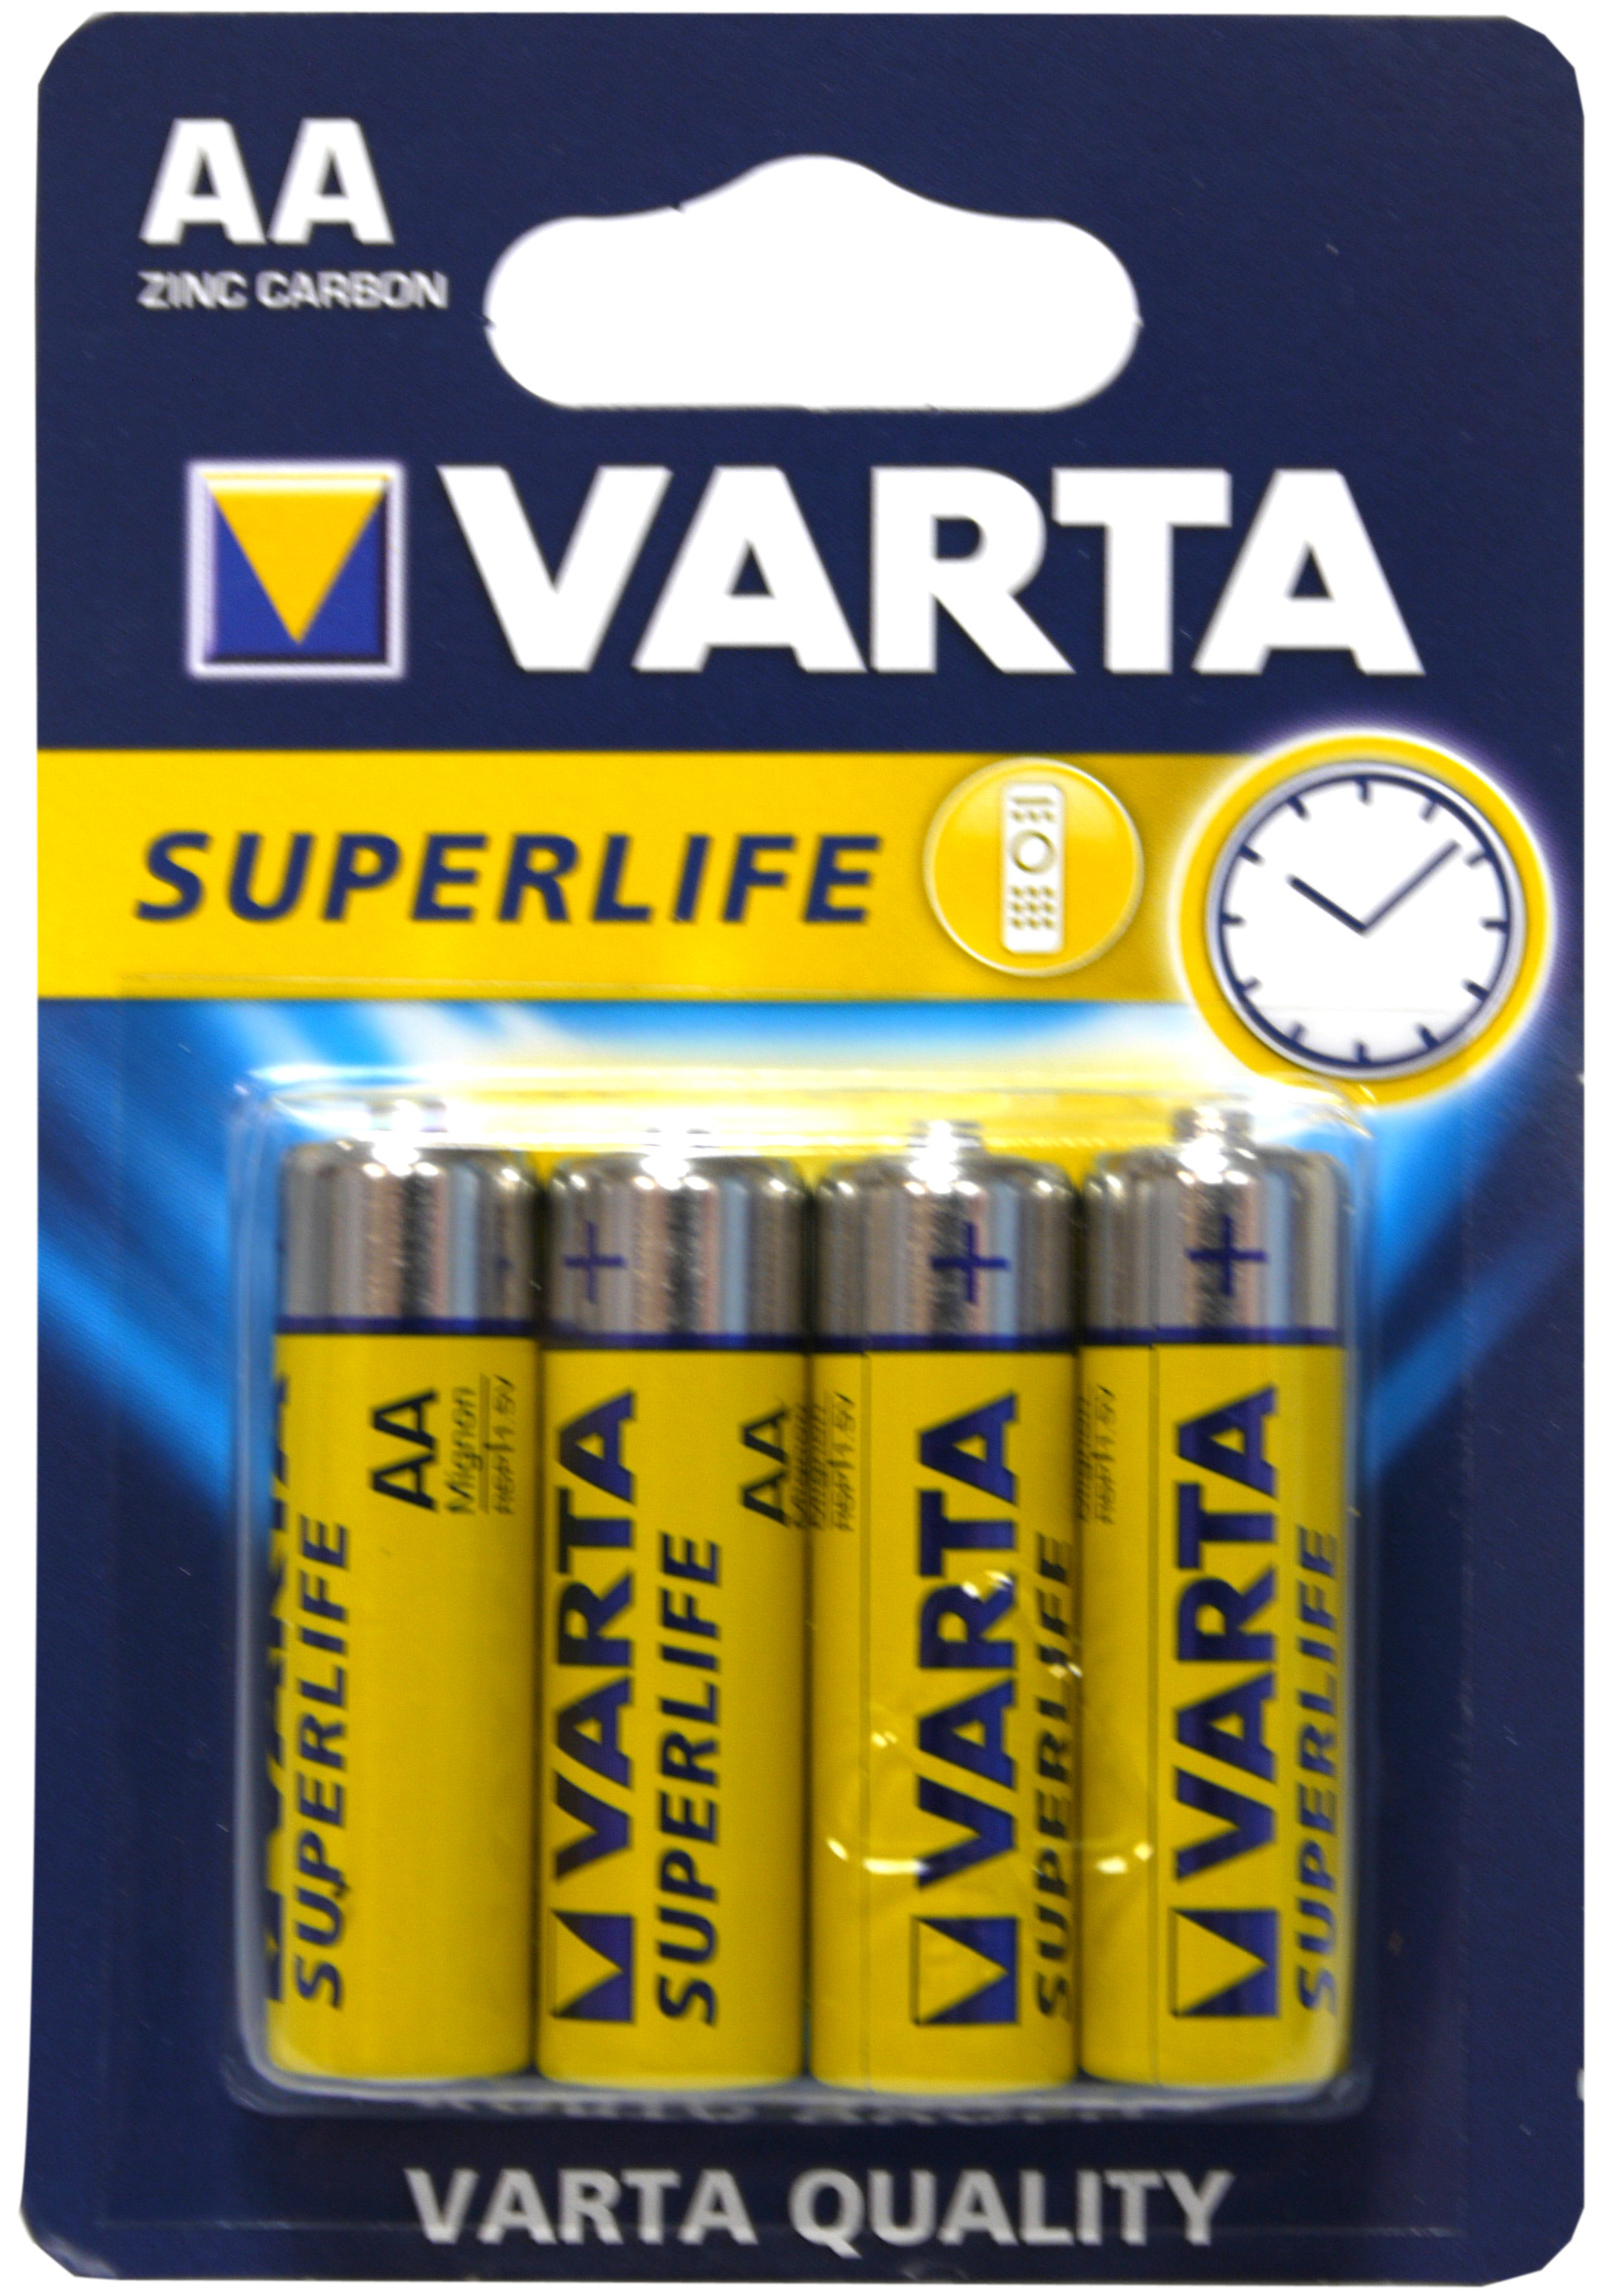 53521 - VARTA Batterien Superlife Mignon/ AA 4er Pack Blister